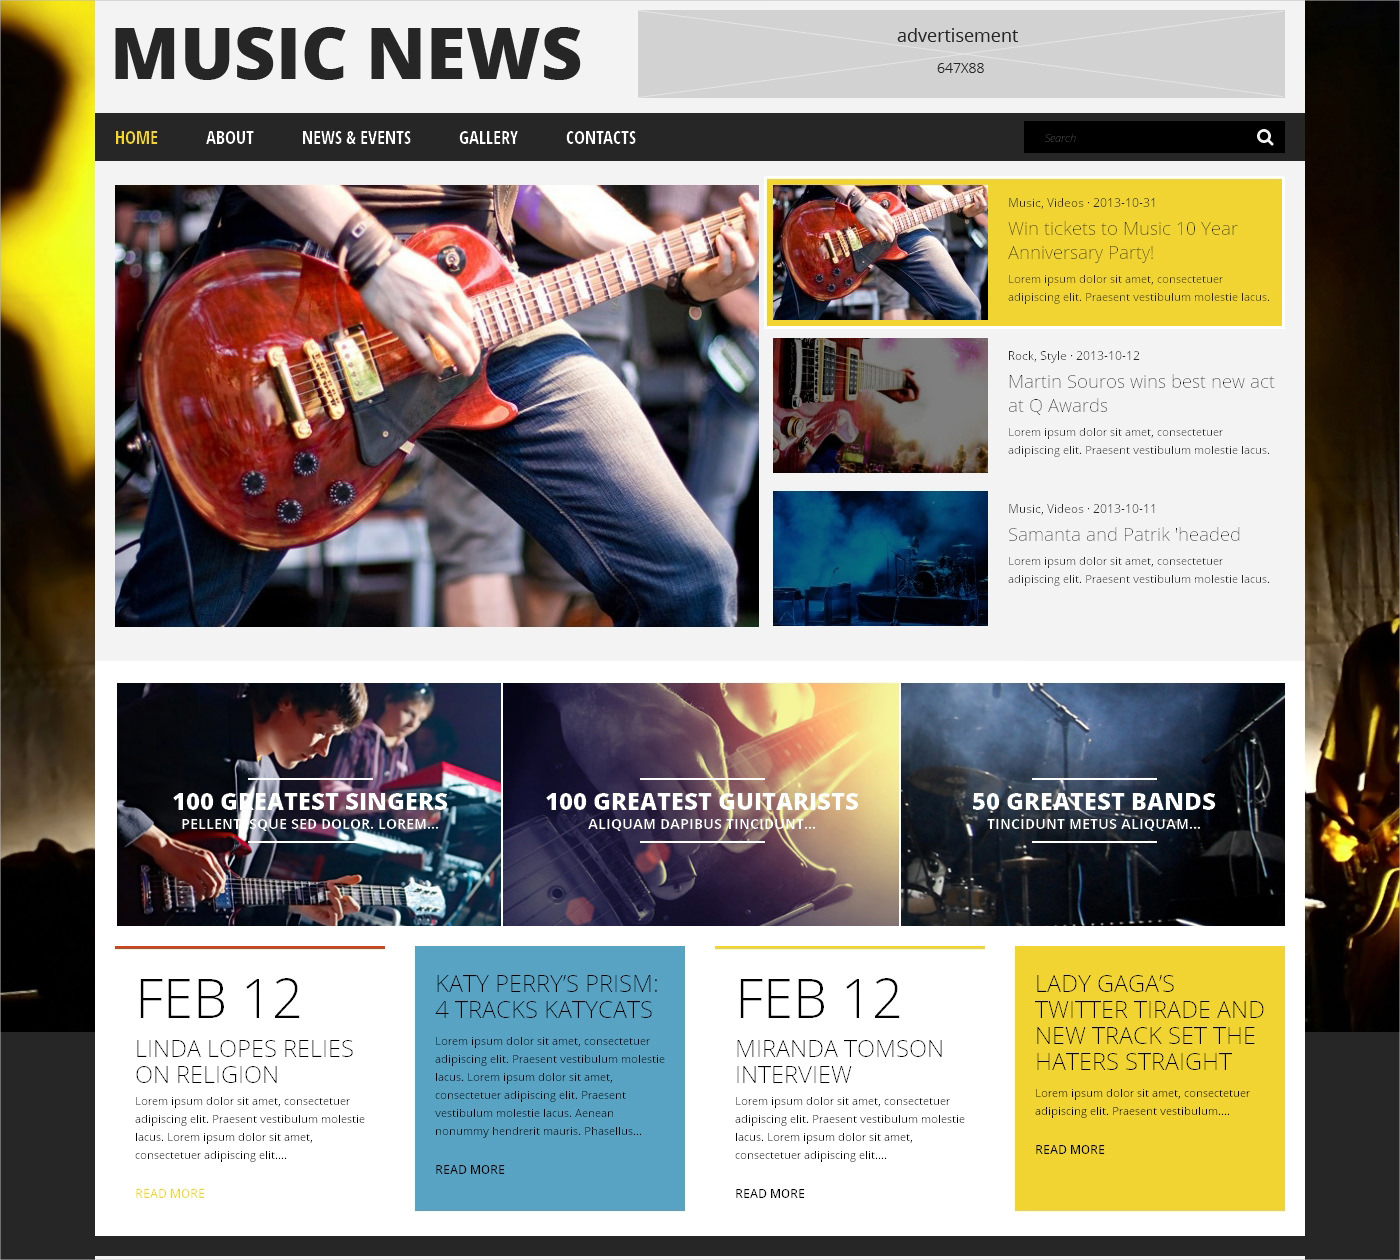 Music News WordPress Theme - $75